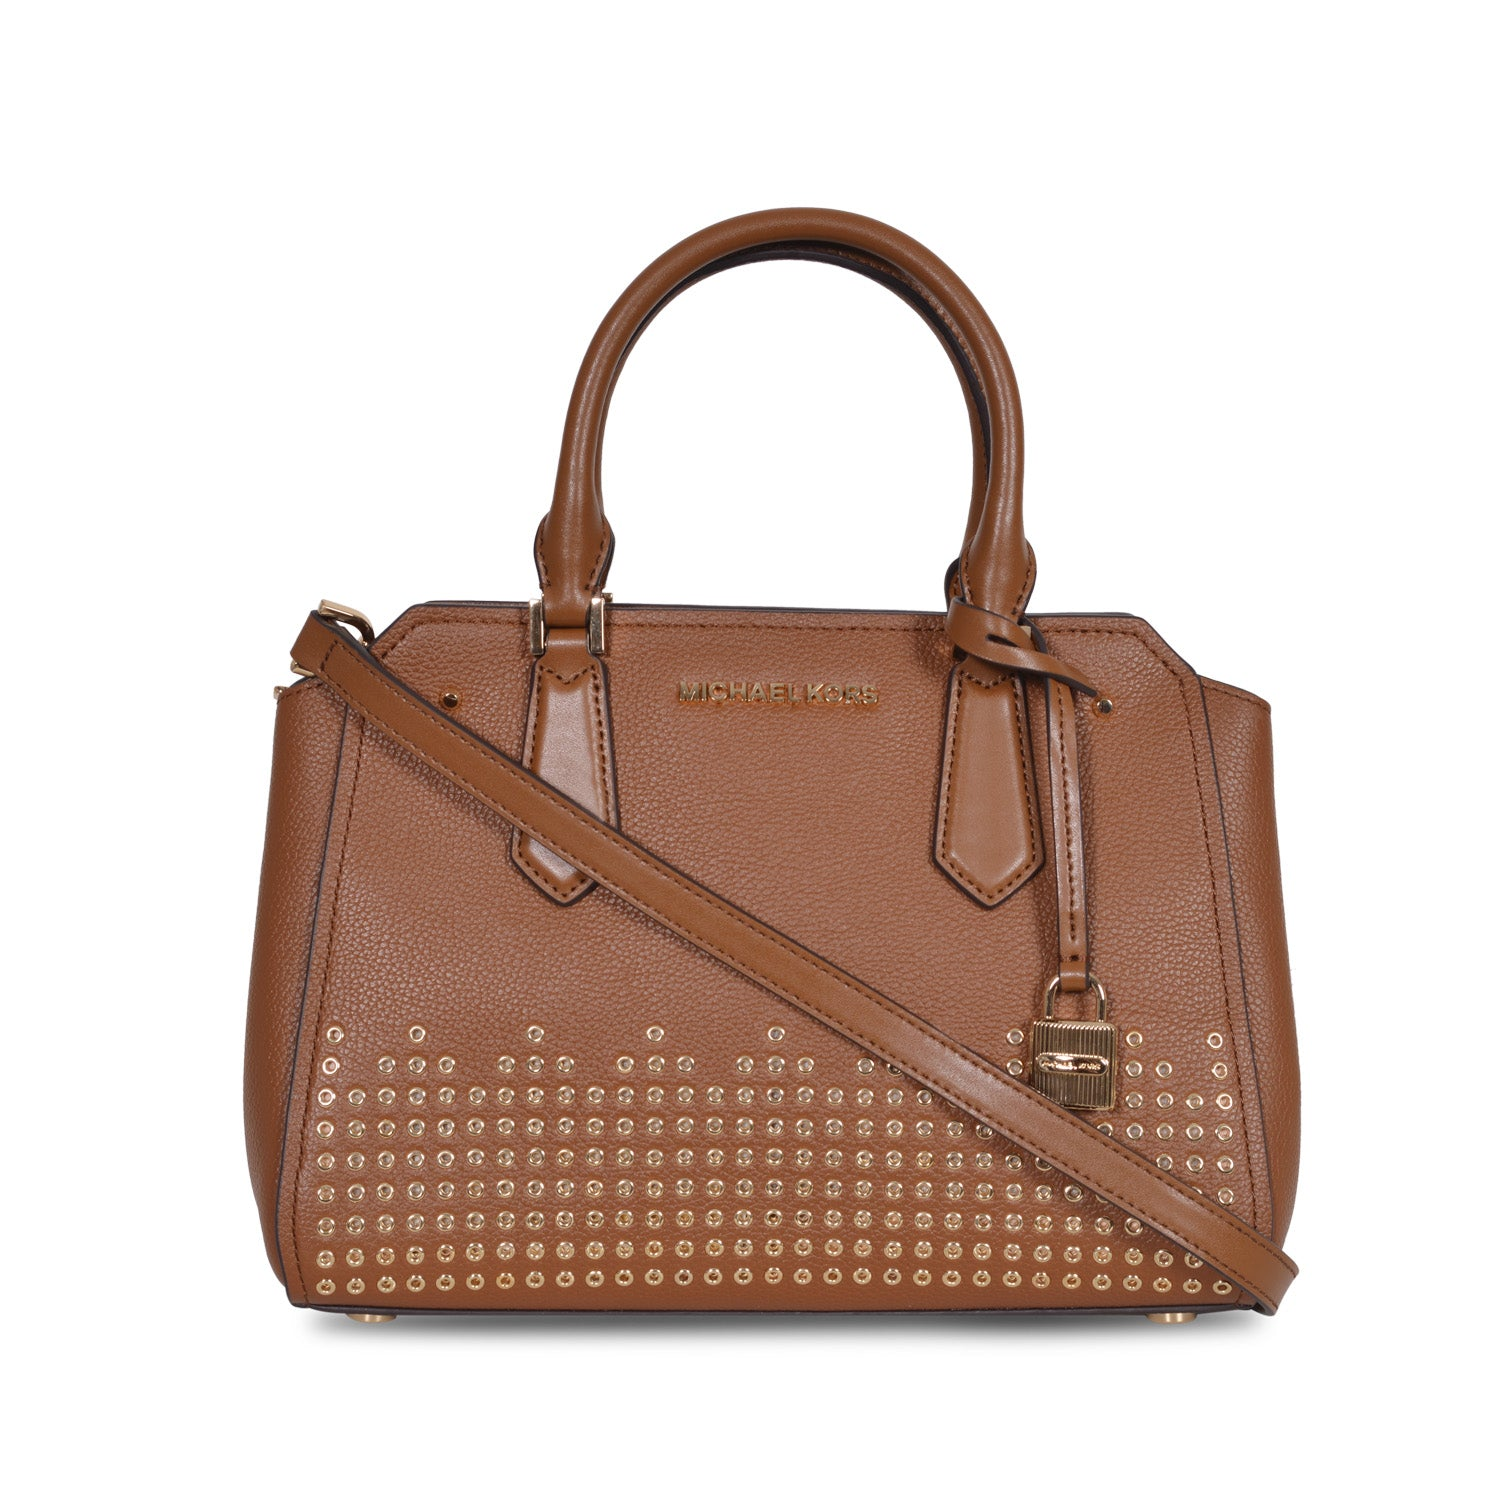 MICHAEL KORS HAYES MEDIUM BROWN LEATHER METAL STUDDED MESSENGER BAG